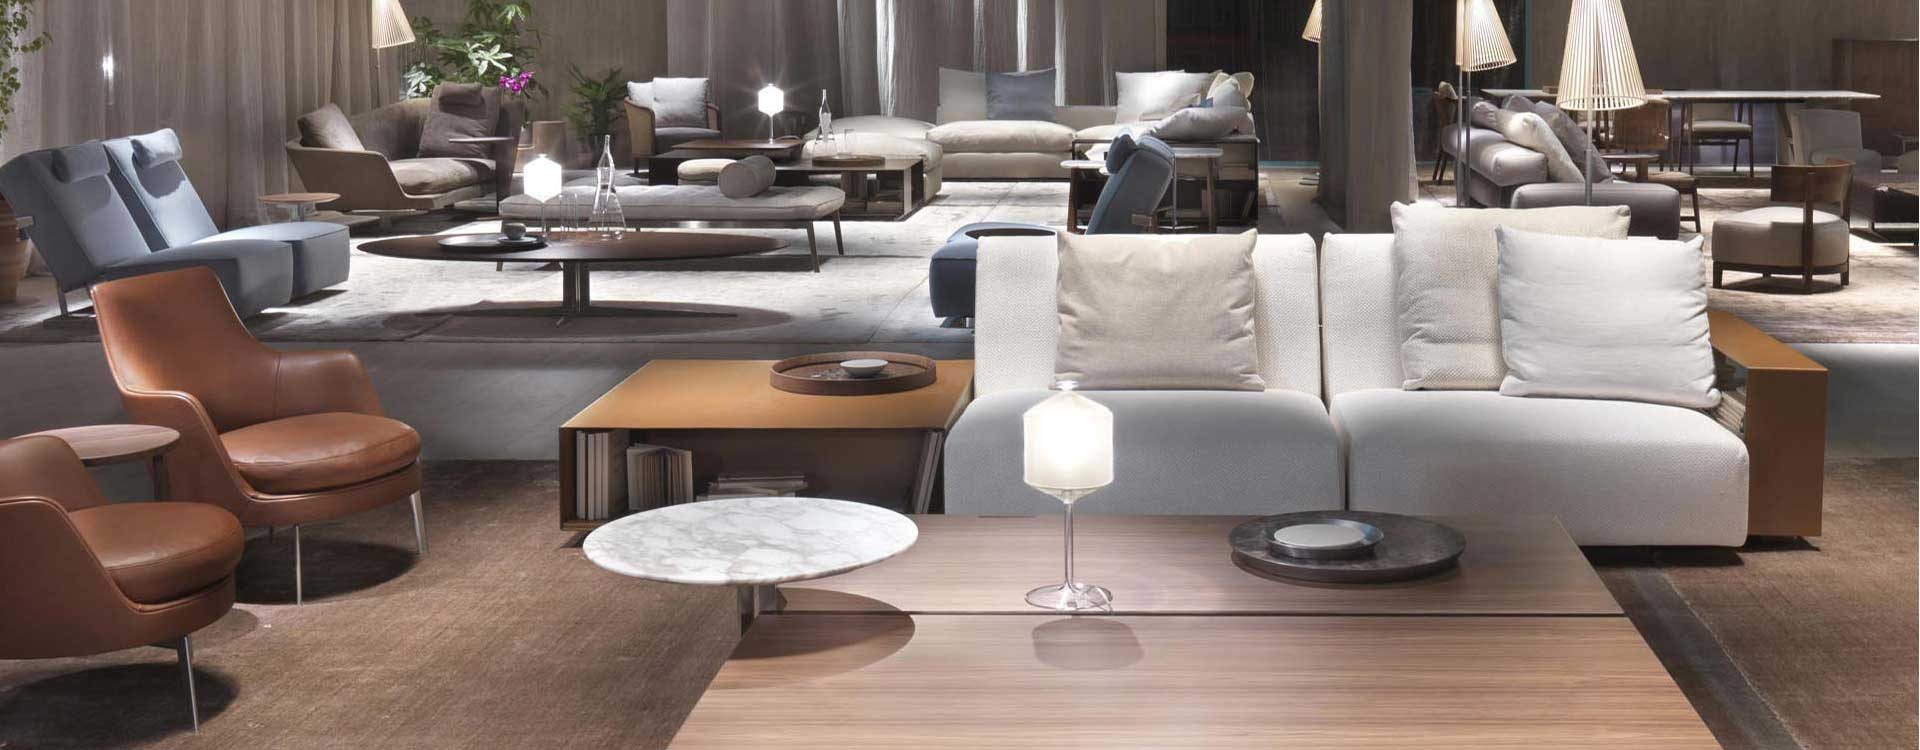 Space matters for sectional sofa example in living room